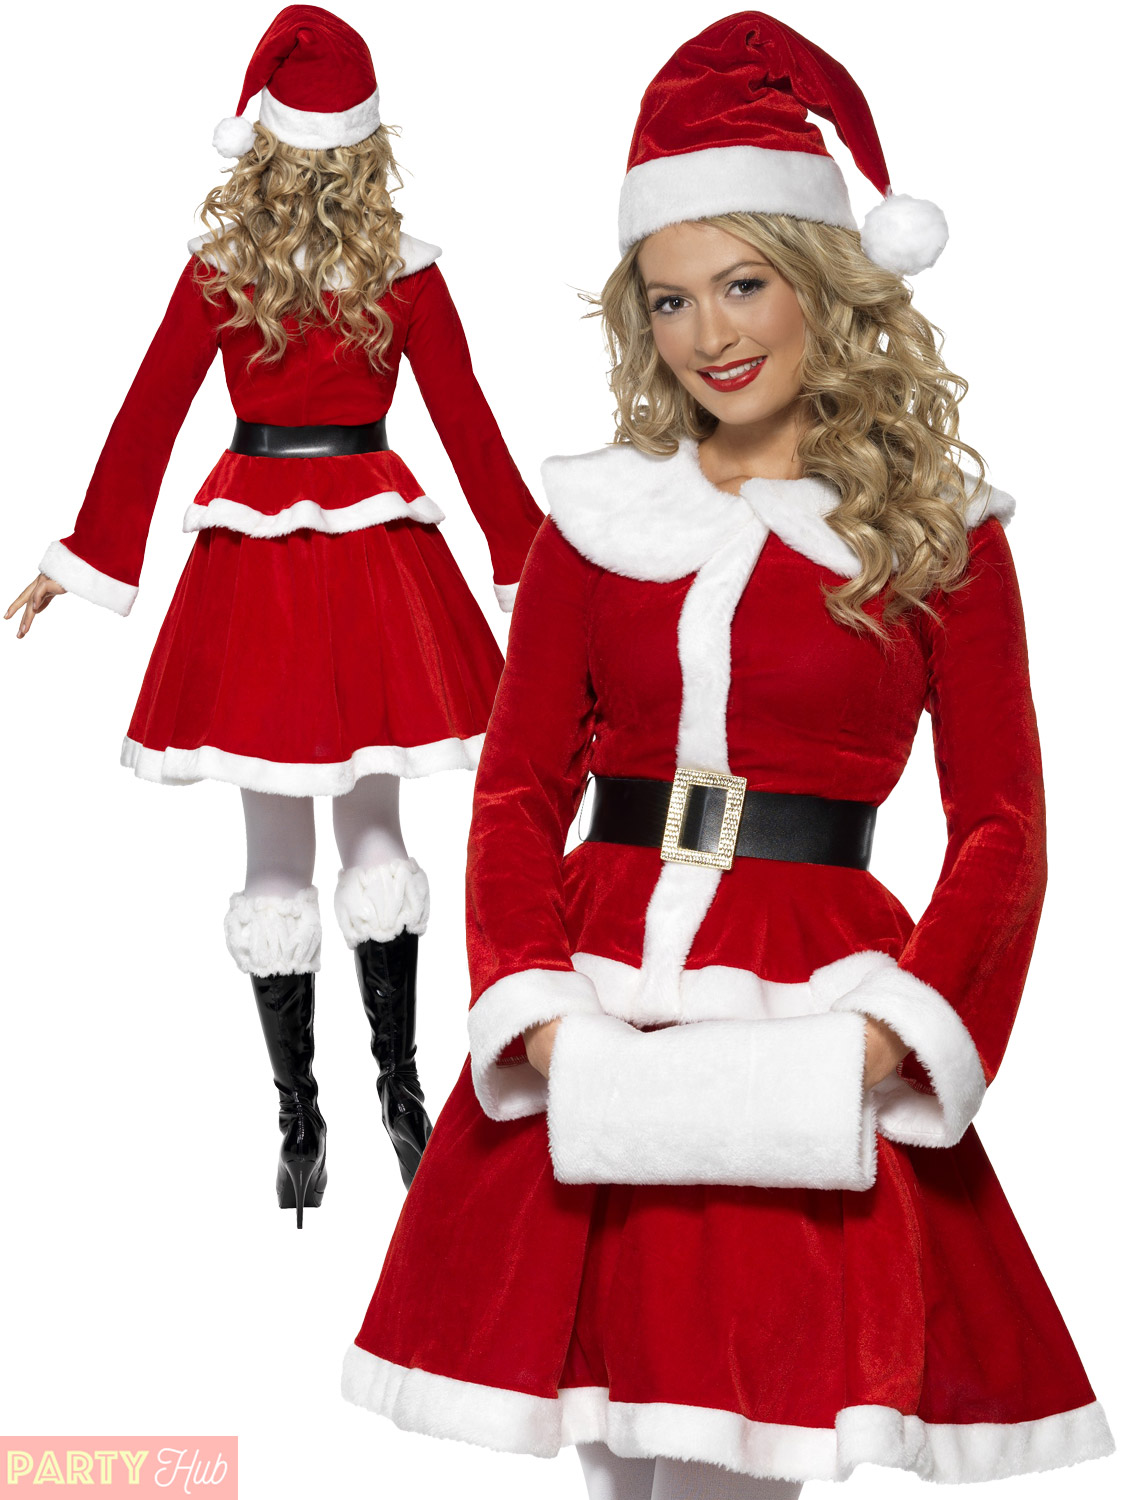 Christmas Fancy Dress.Details About Ladies Miss Santa Costume Muff Adults Christmas Fancy Dress Womens Xmas Outfit